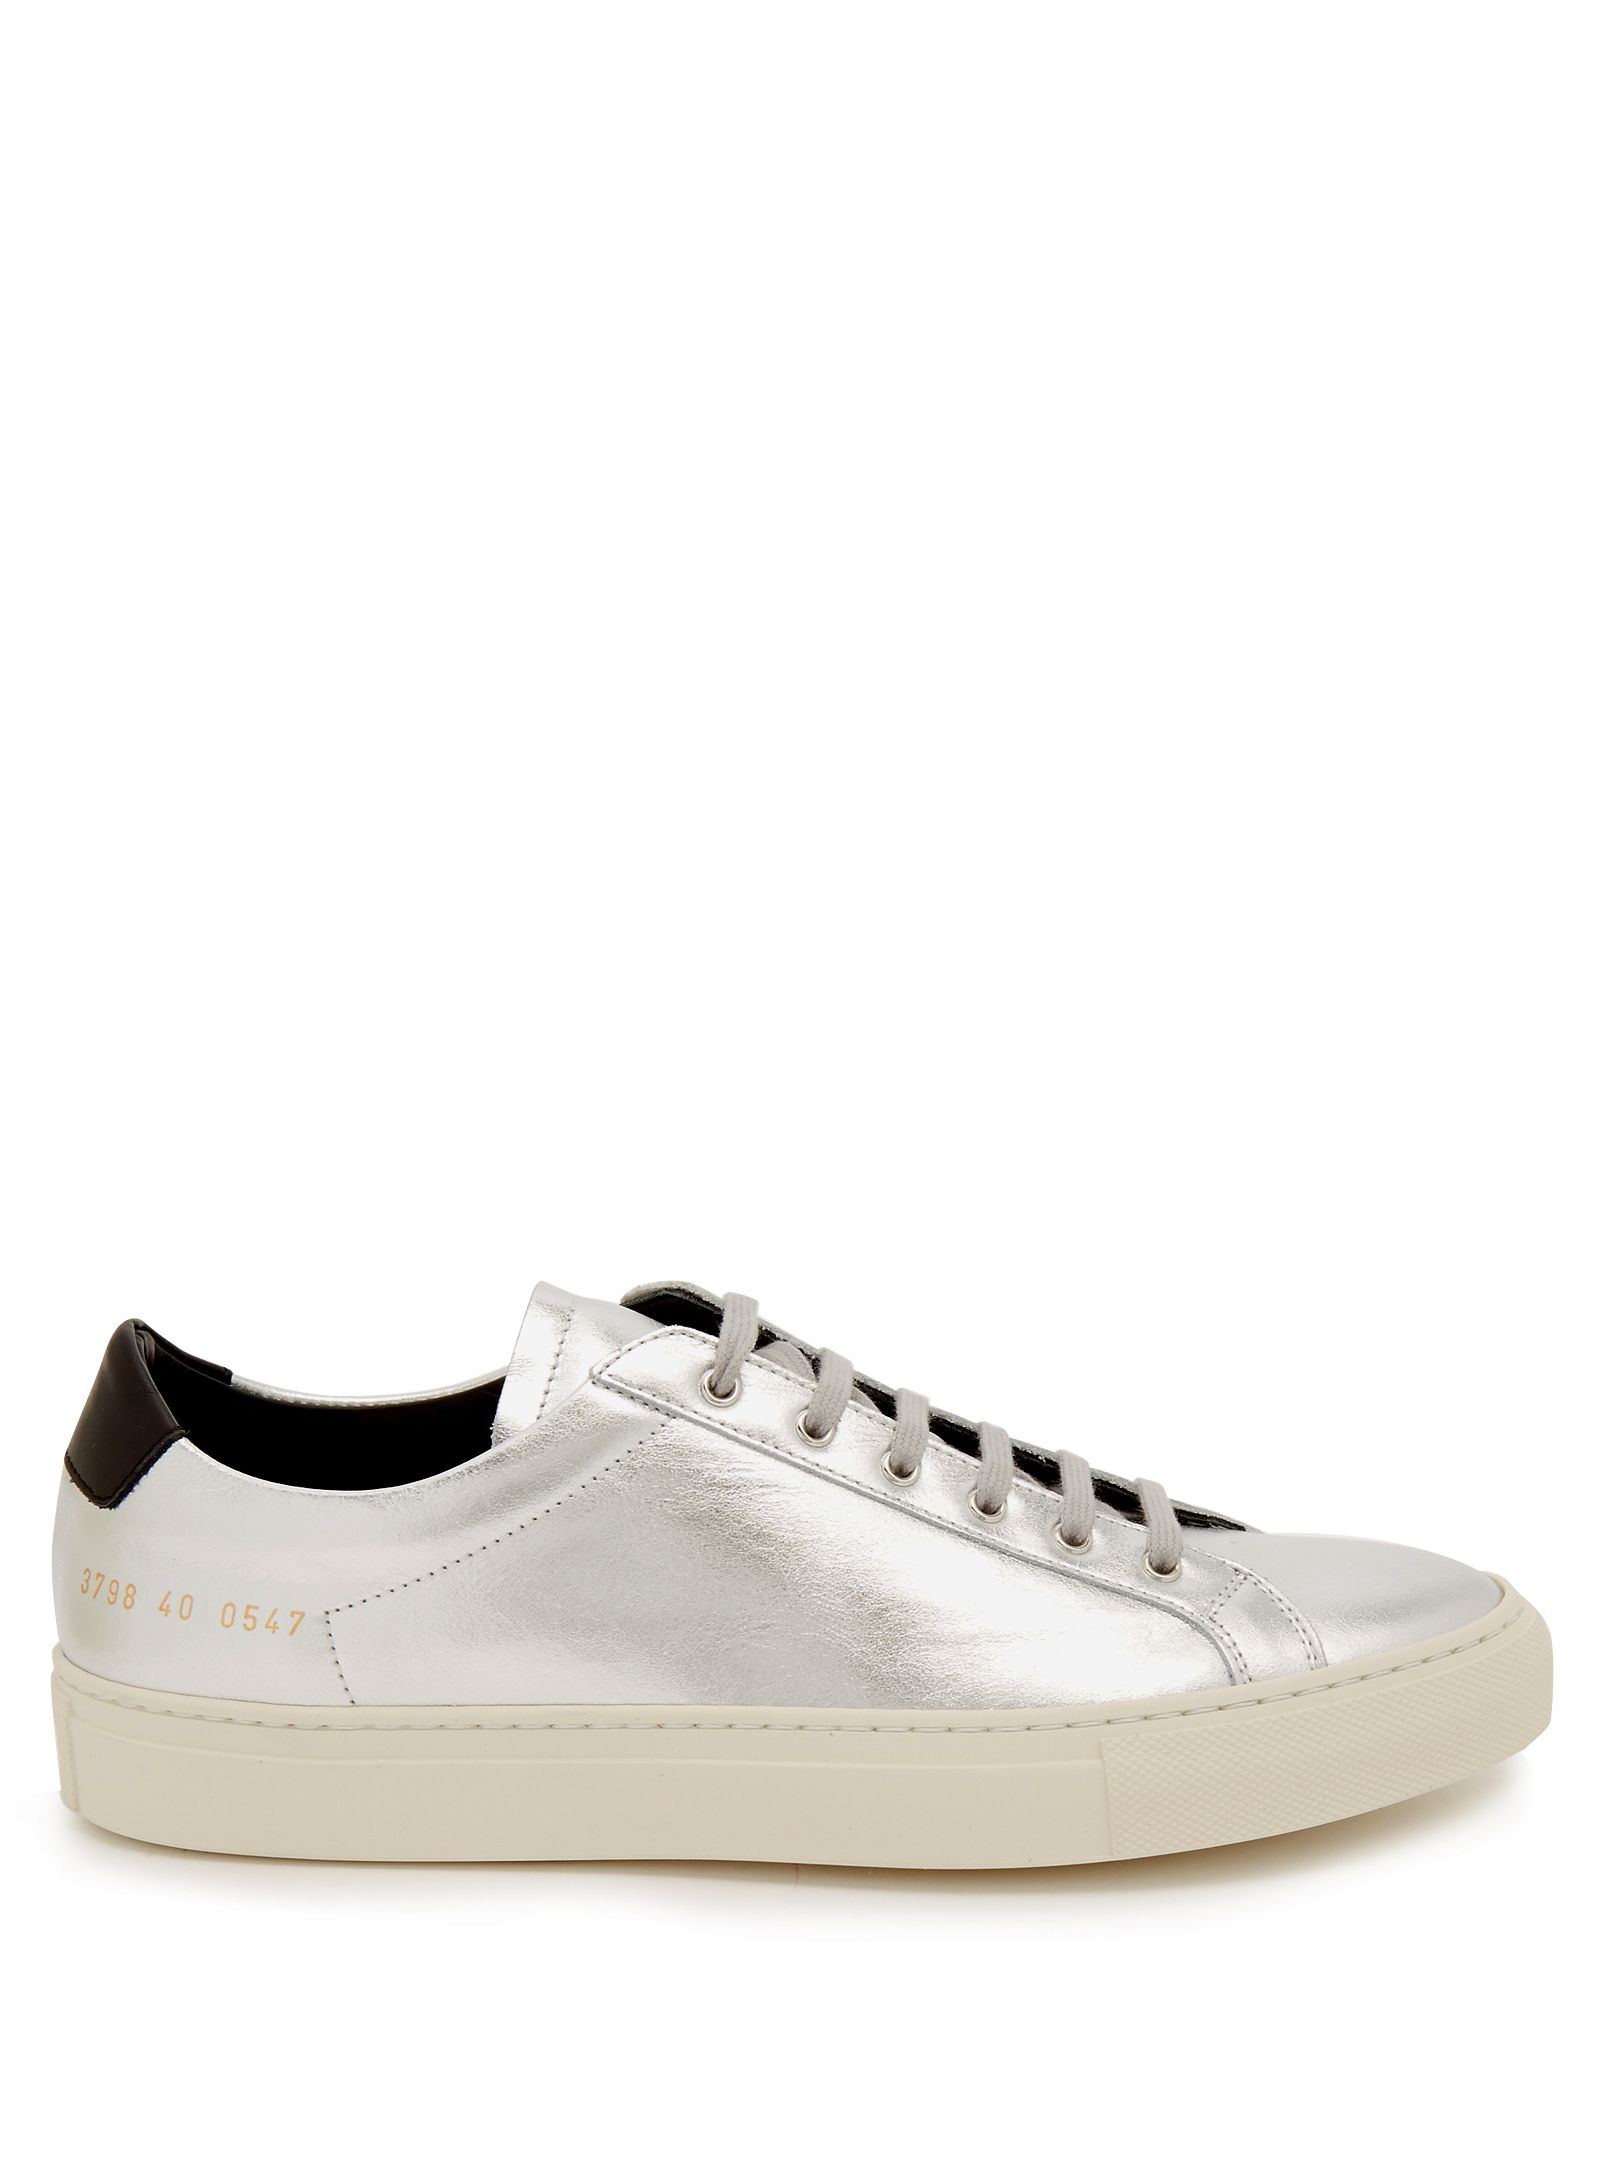 d73e20d47471 Click here to buy Common Projects Achilles Retro low-top leather trainers  at MATCHESFASHION.